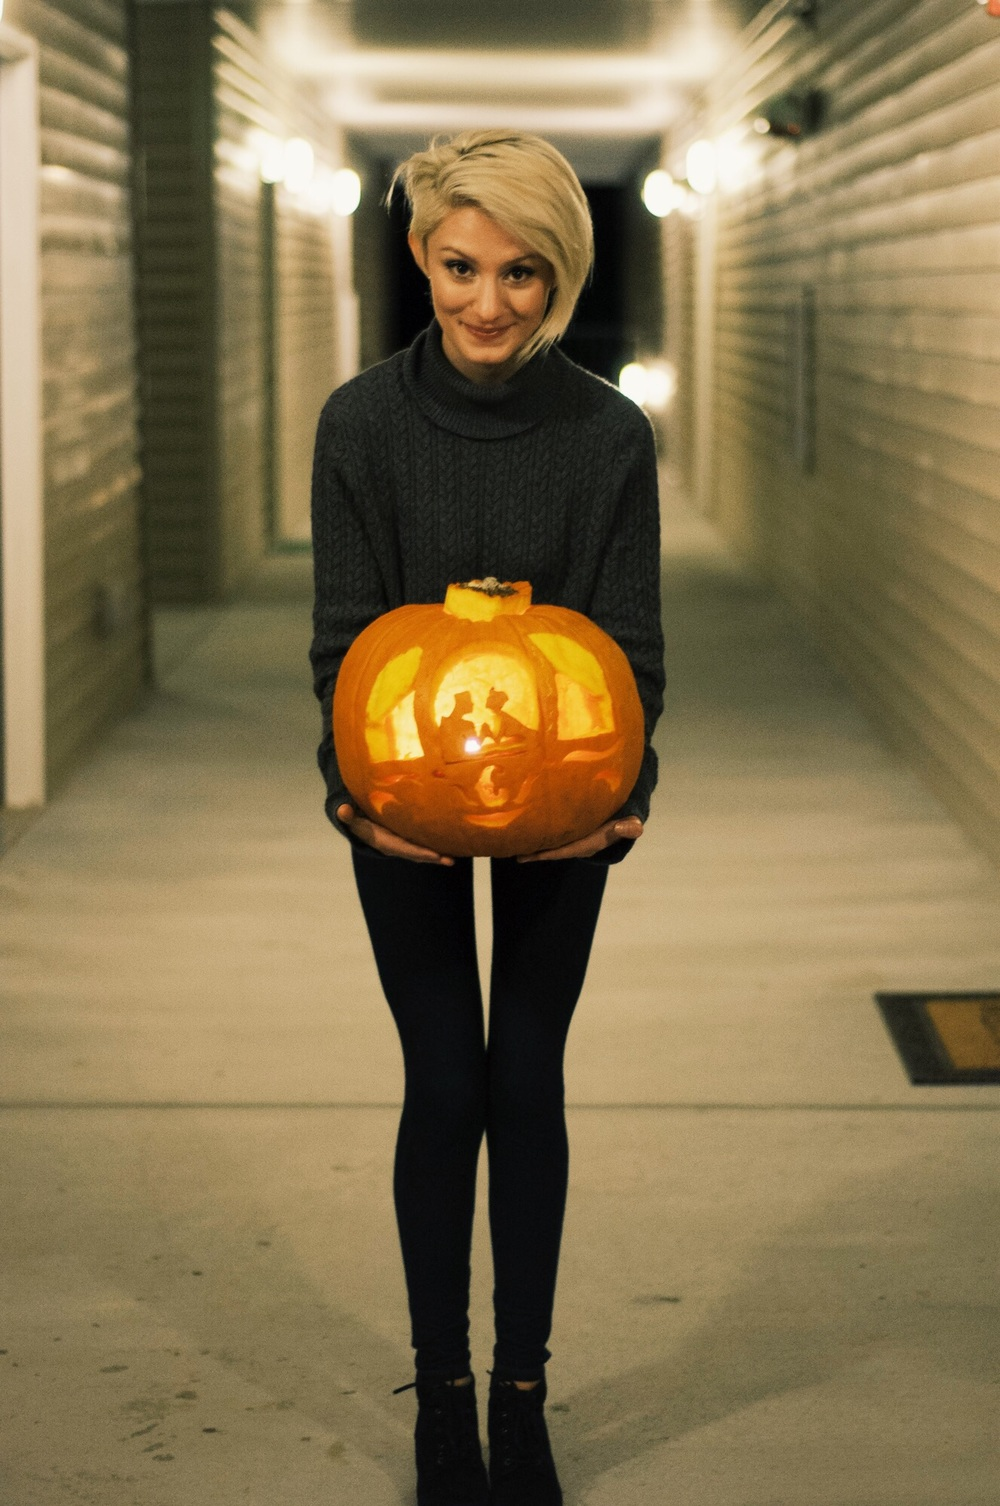 Officially Sweater Weather & Pumpkin Carving- Linn Style by Jessica Linn